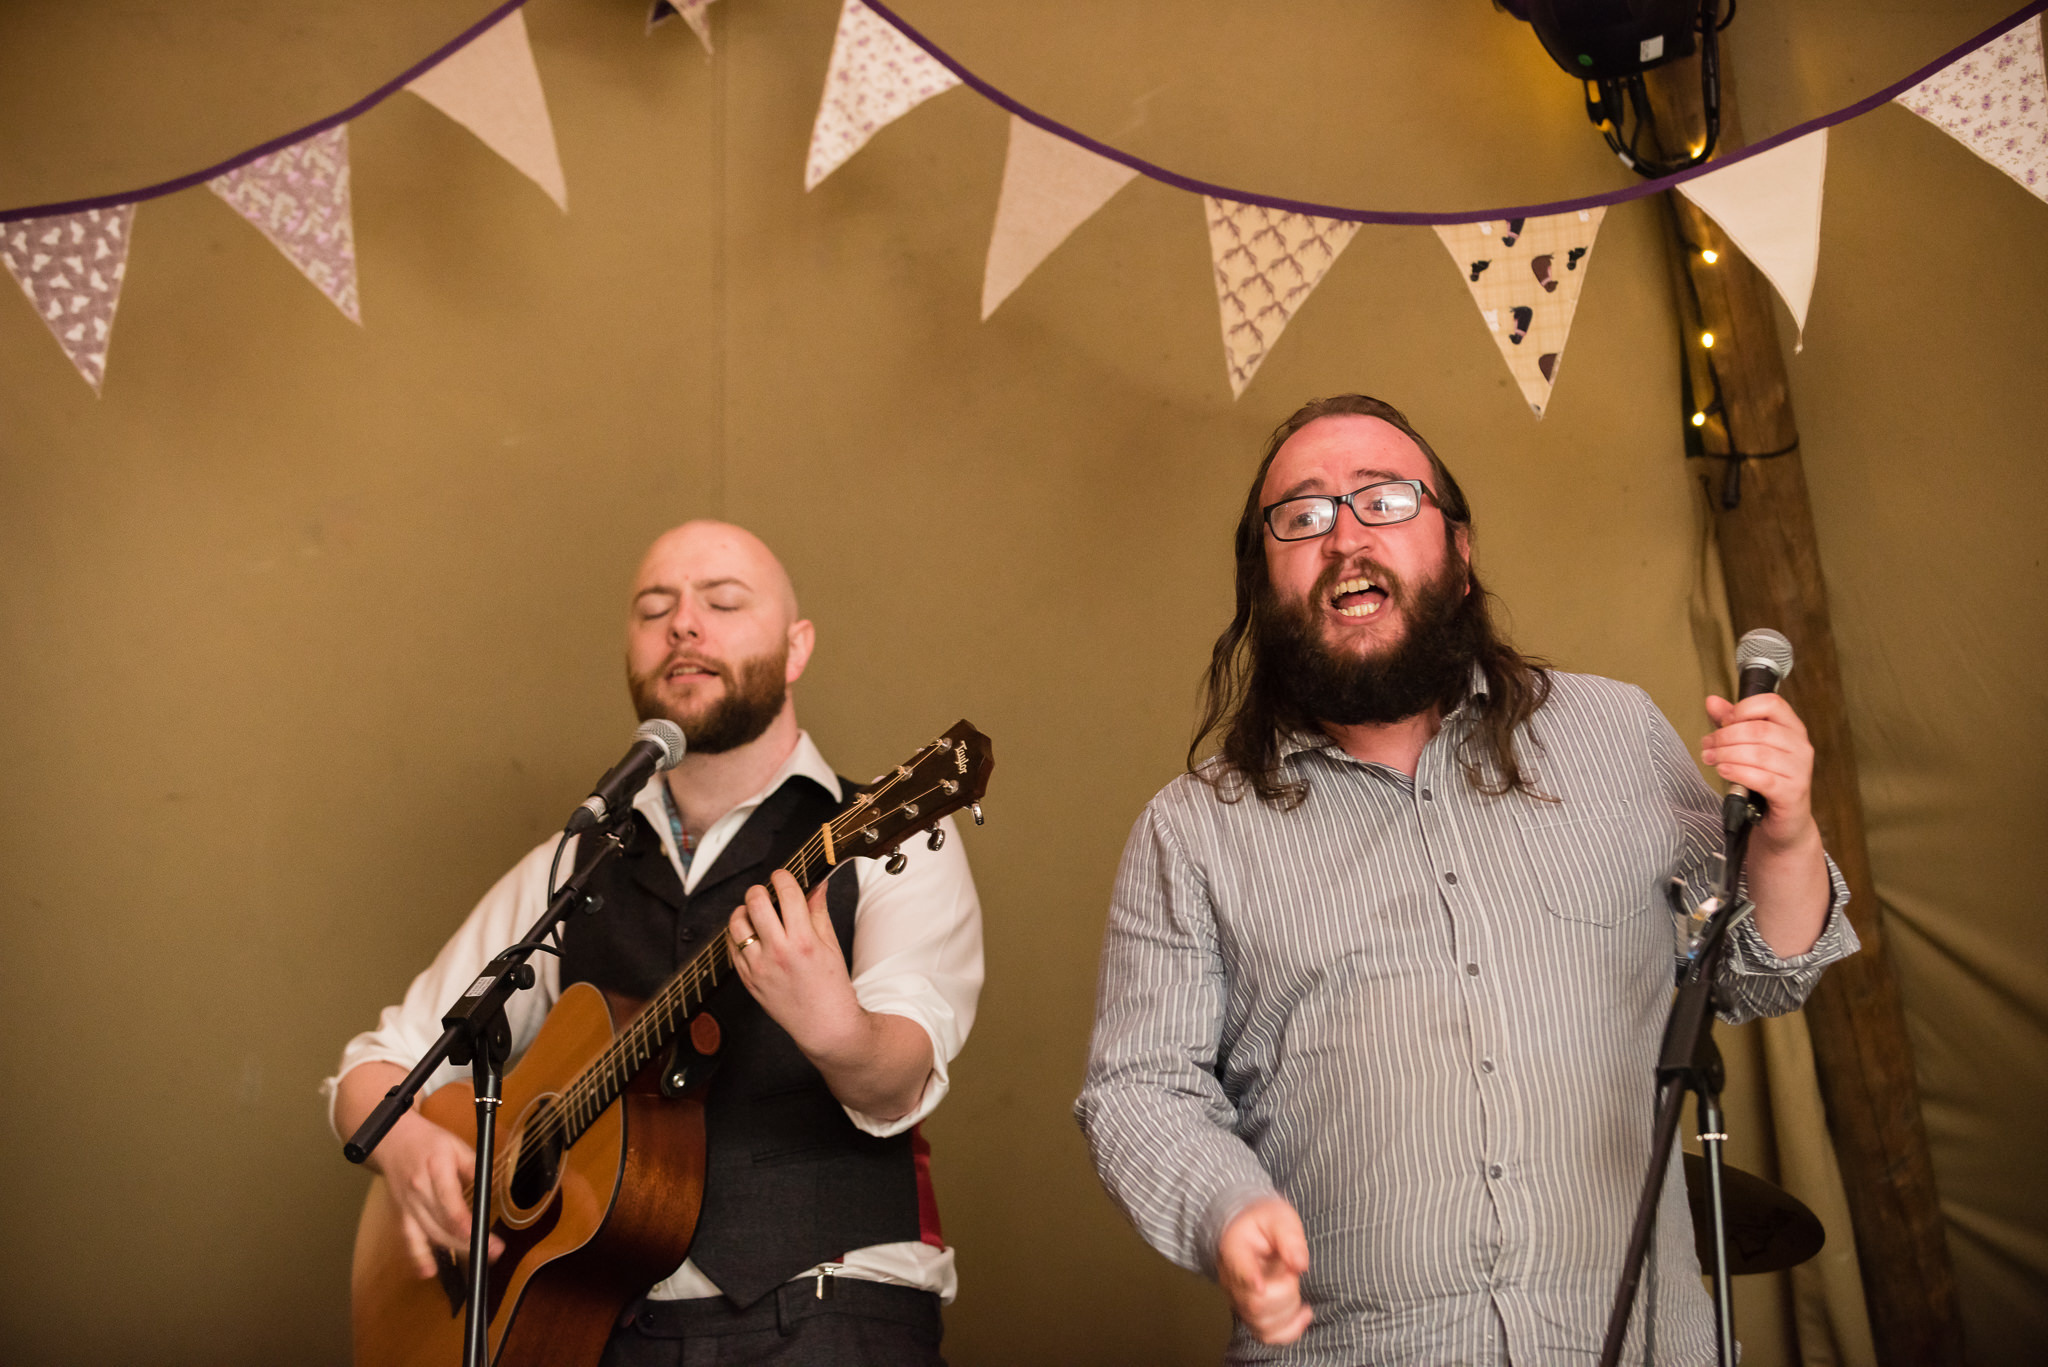 The groom and his friend perform during the tipi wedding reception